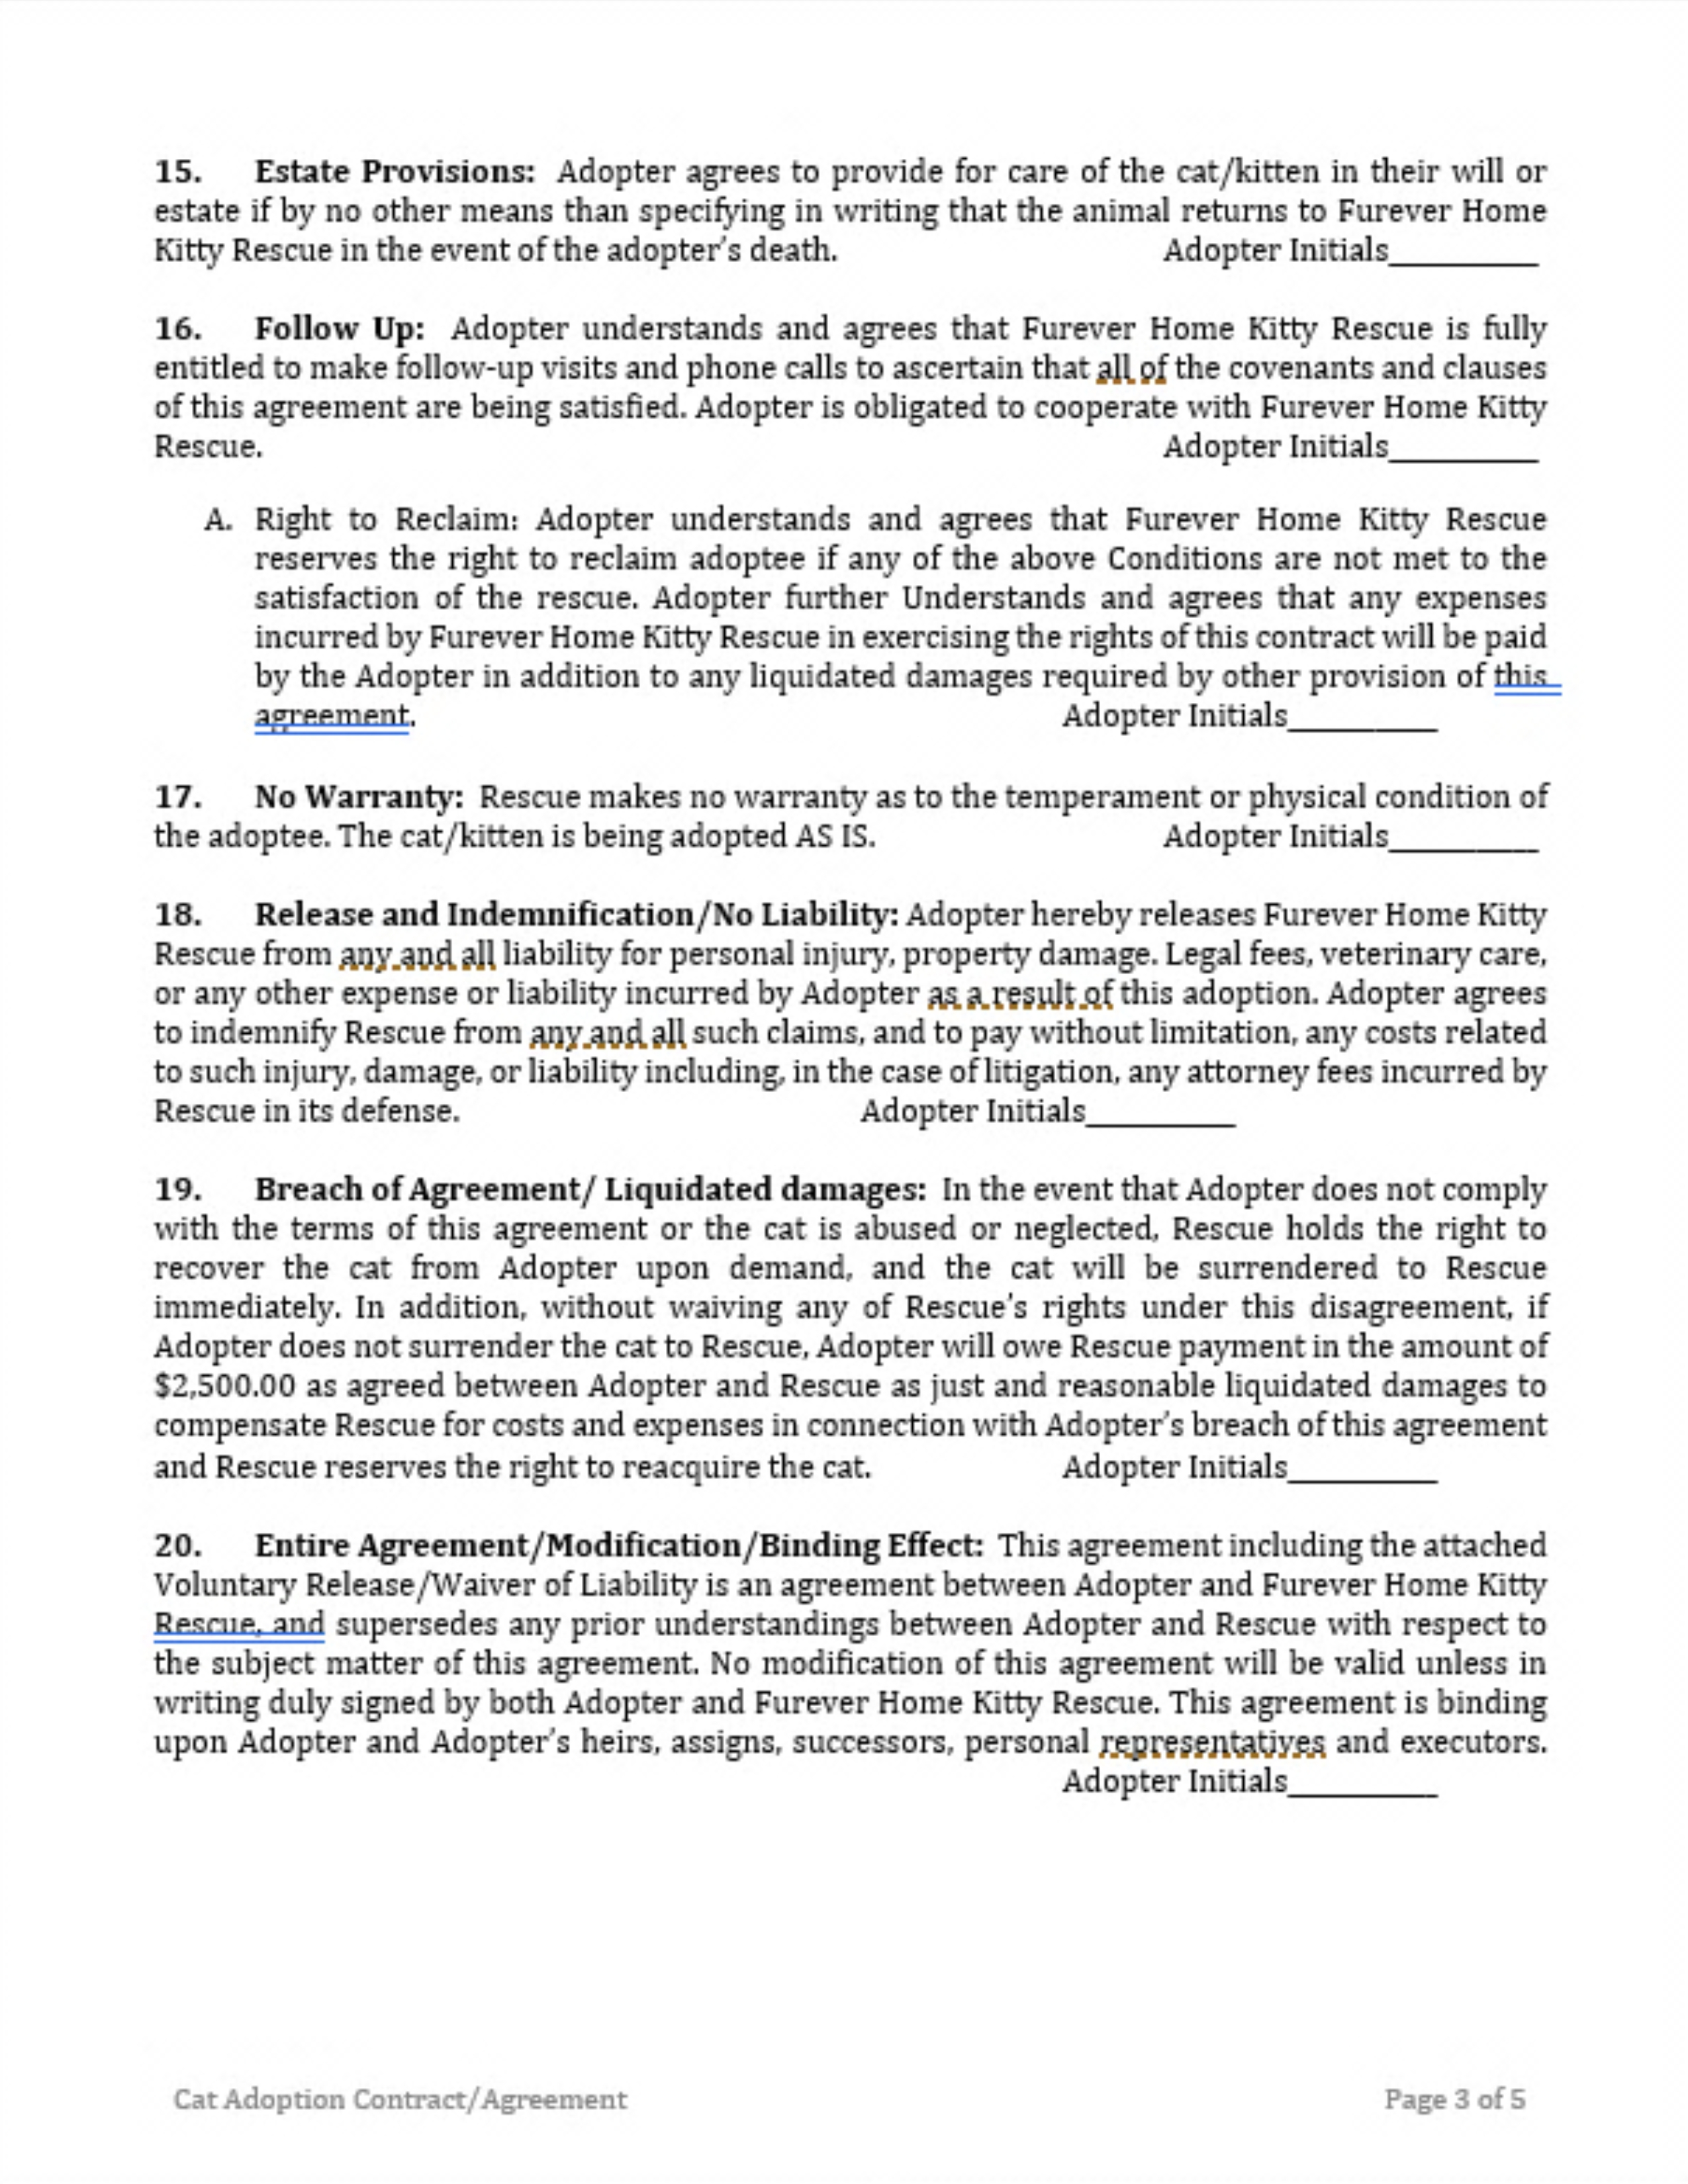 fhkr adoption contract3